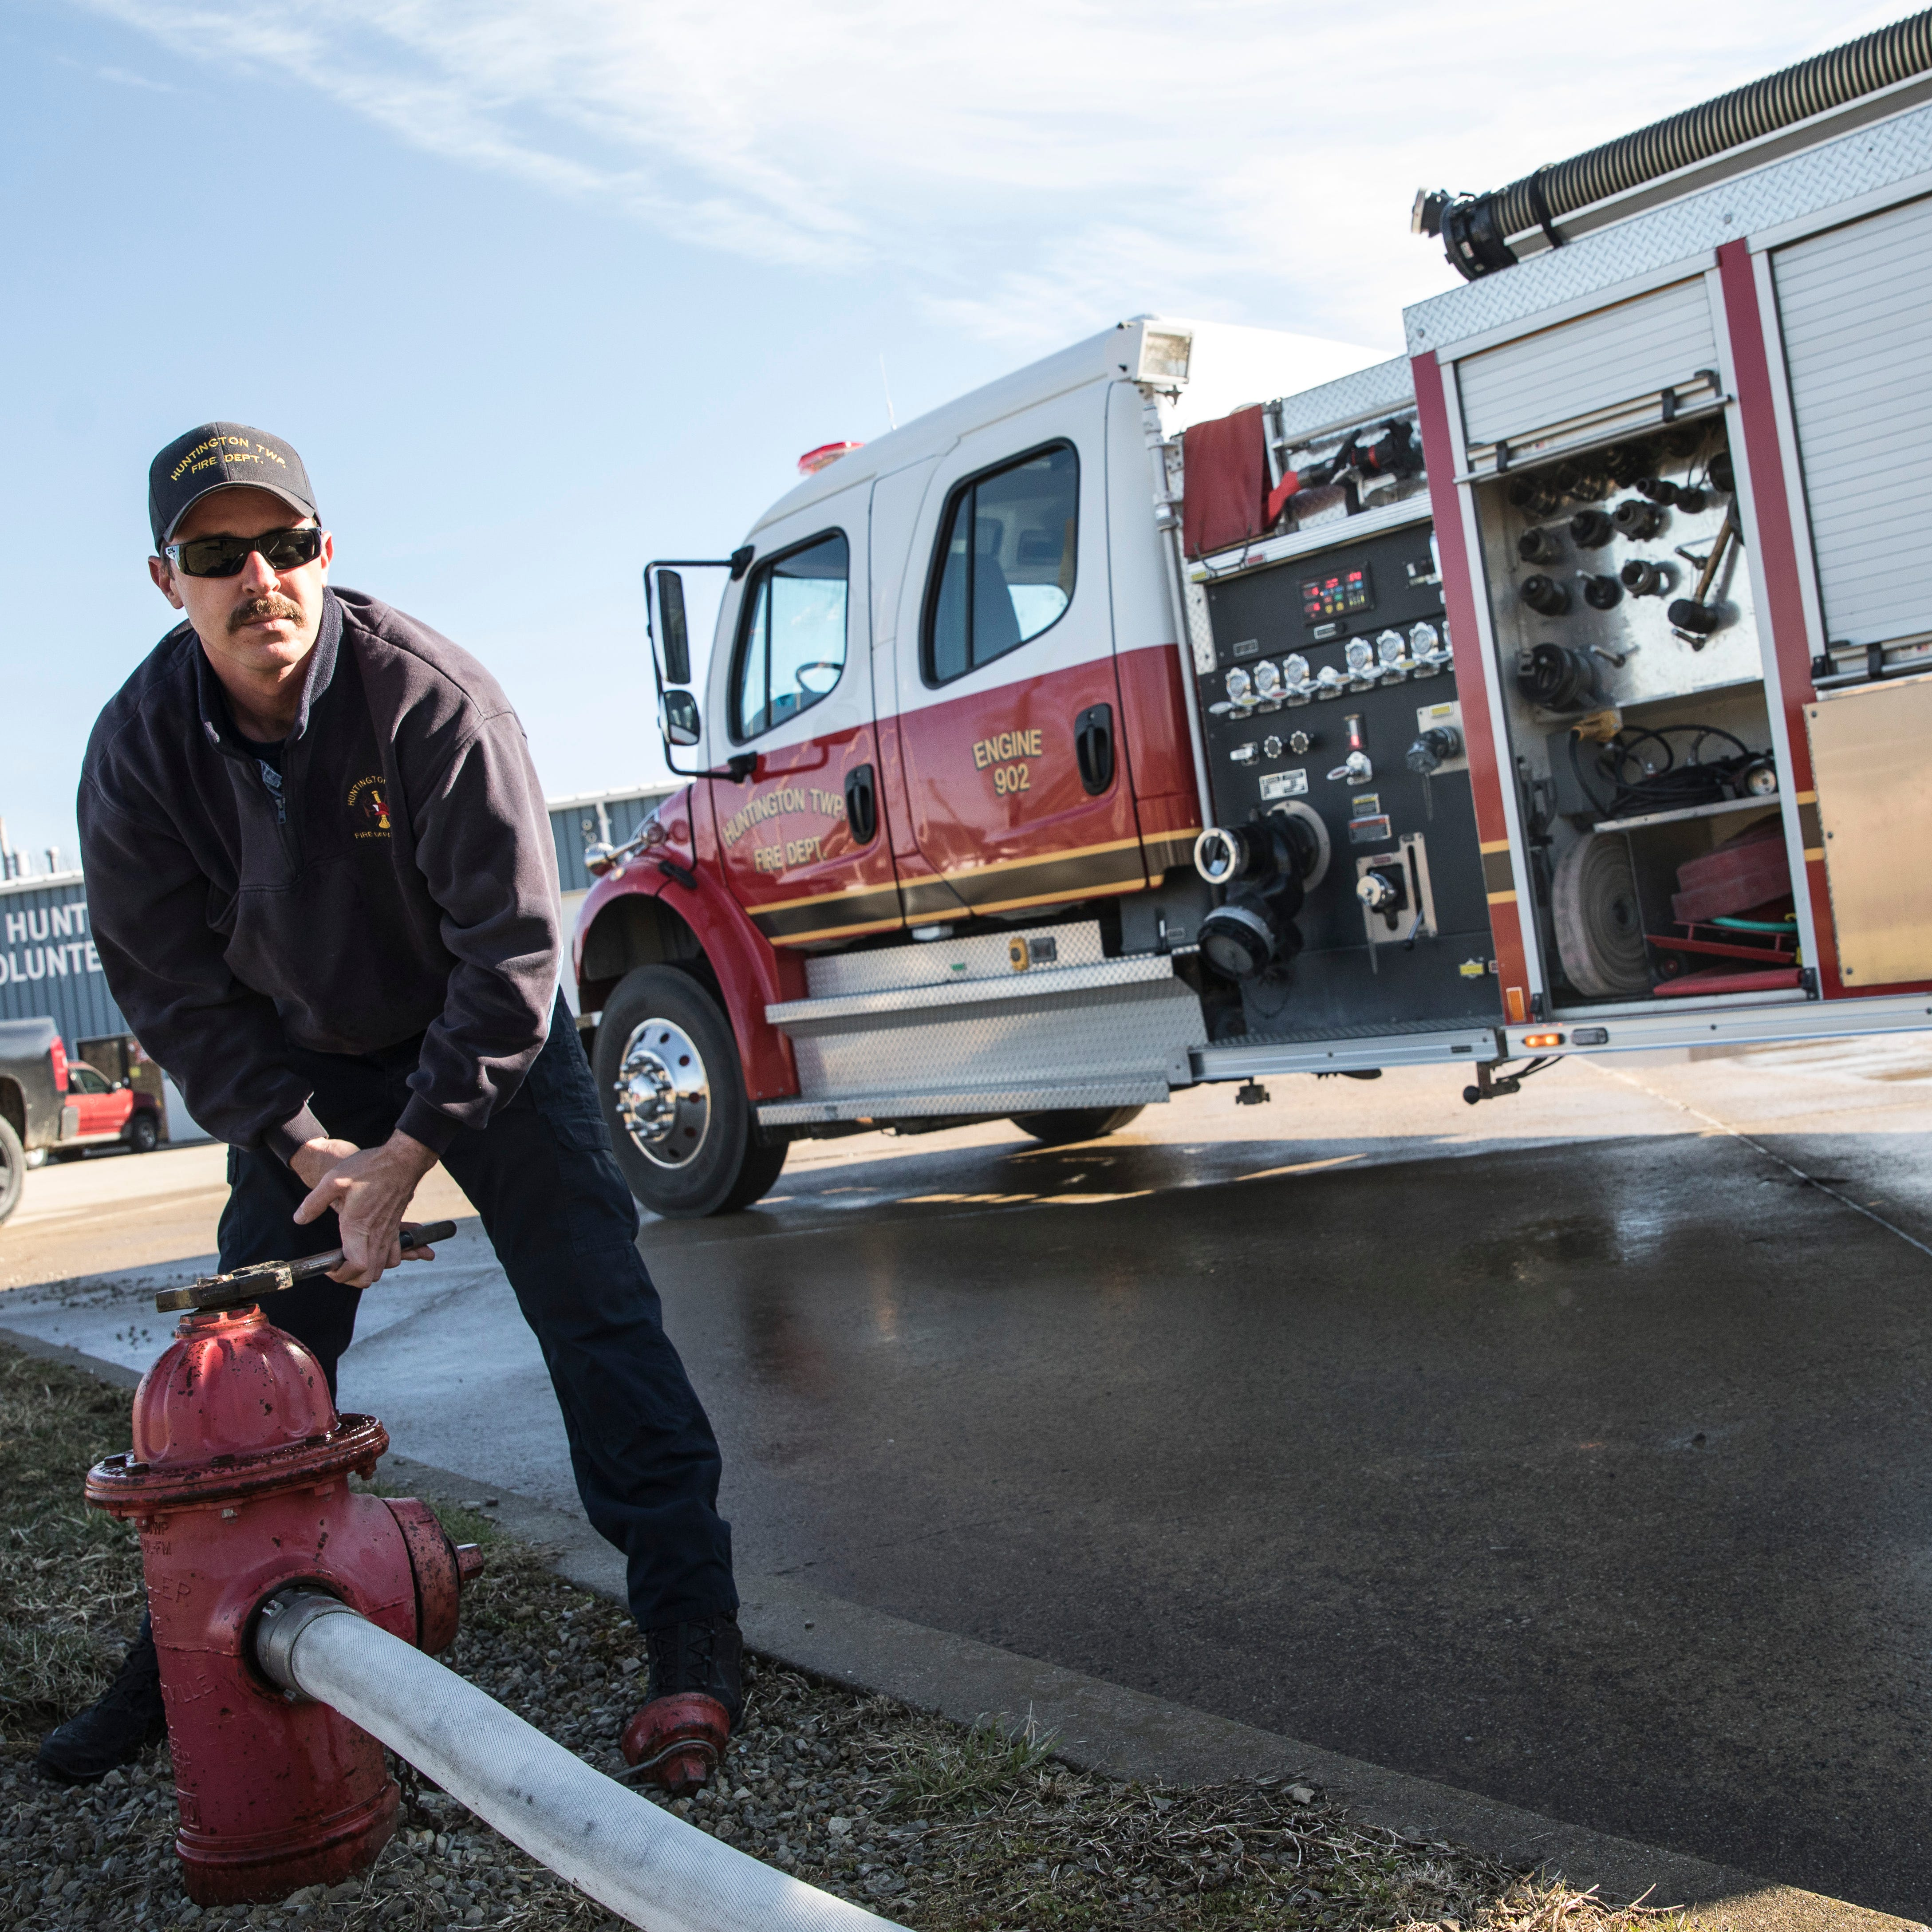 Huntington becomes first township to hire full-time firefighters